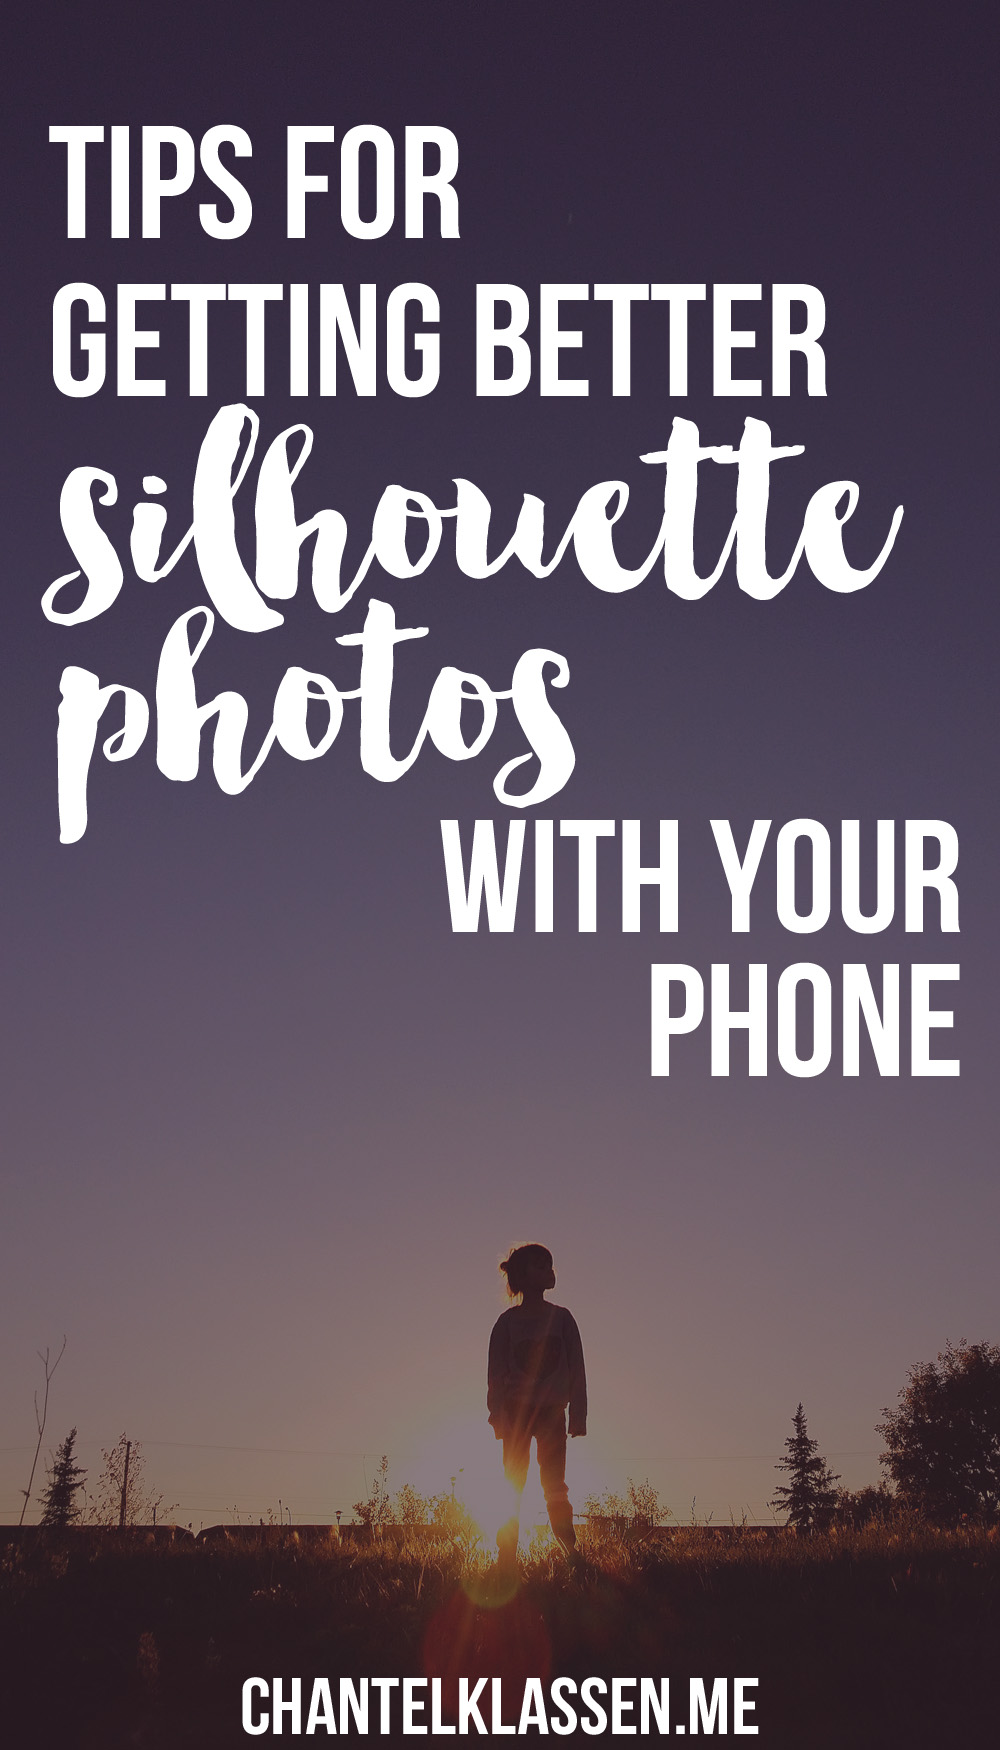 Tips for getting better silhouette photos with your phone